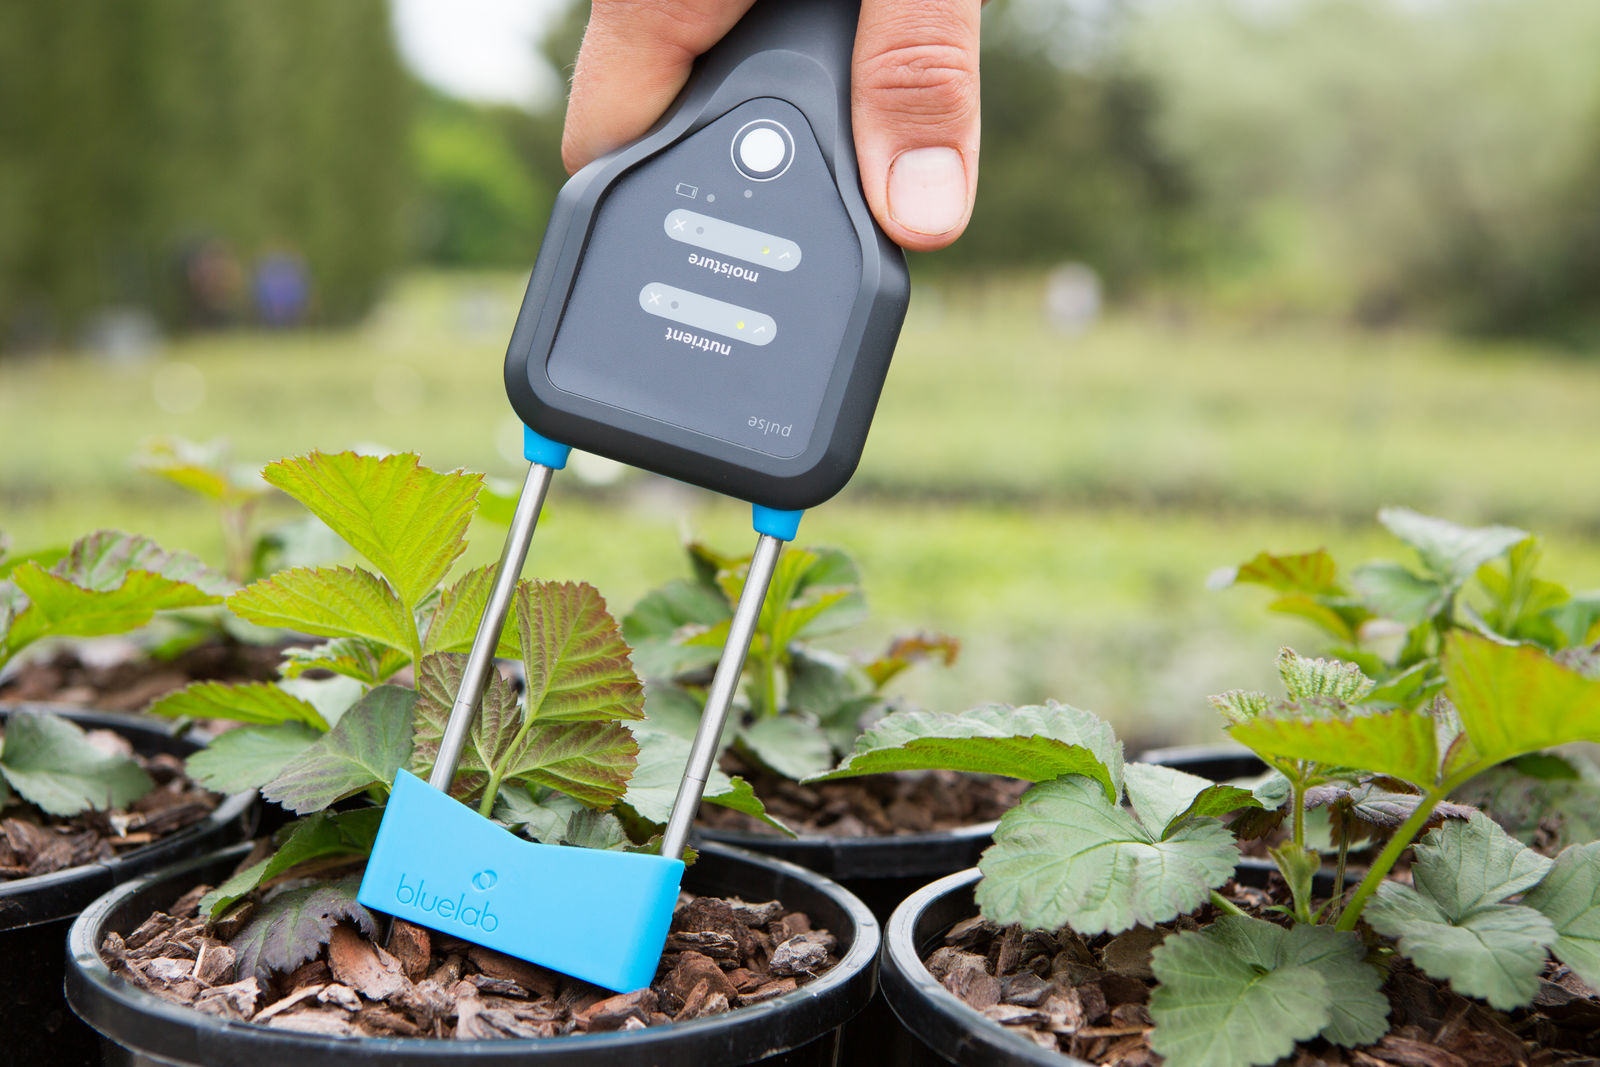 The Bluelab Pulse Meter taking a reading in soil